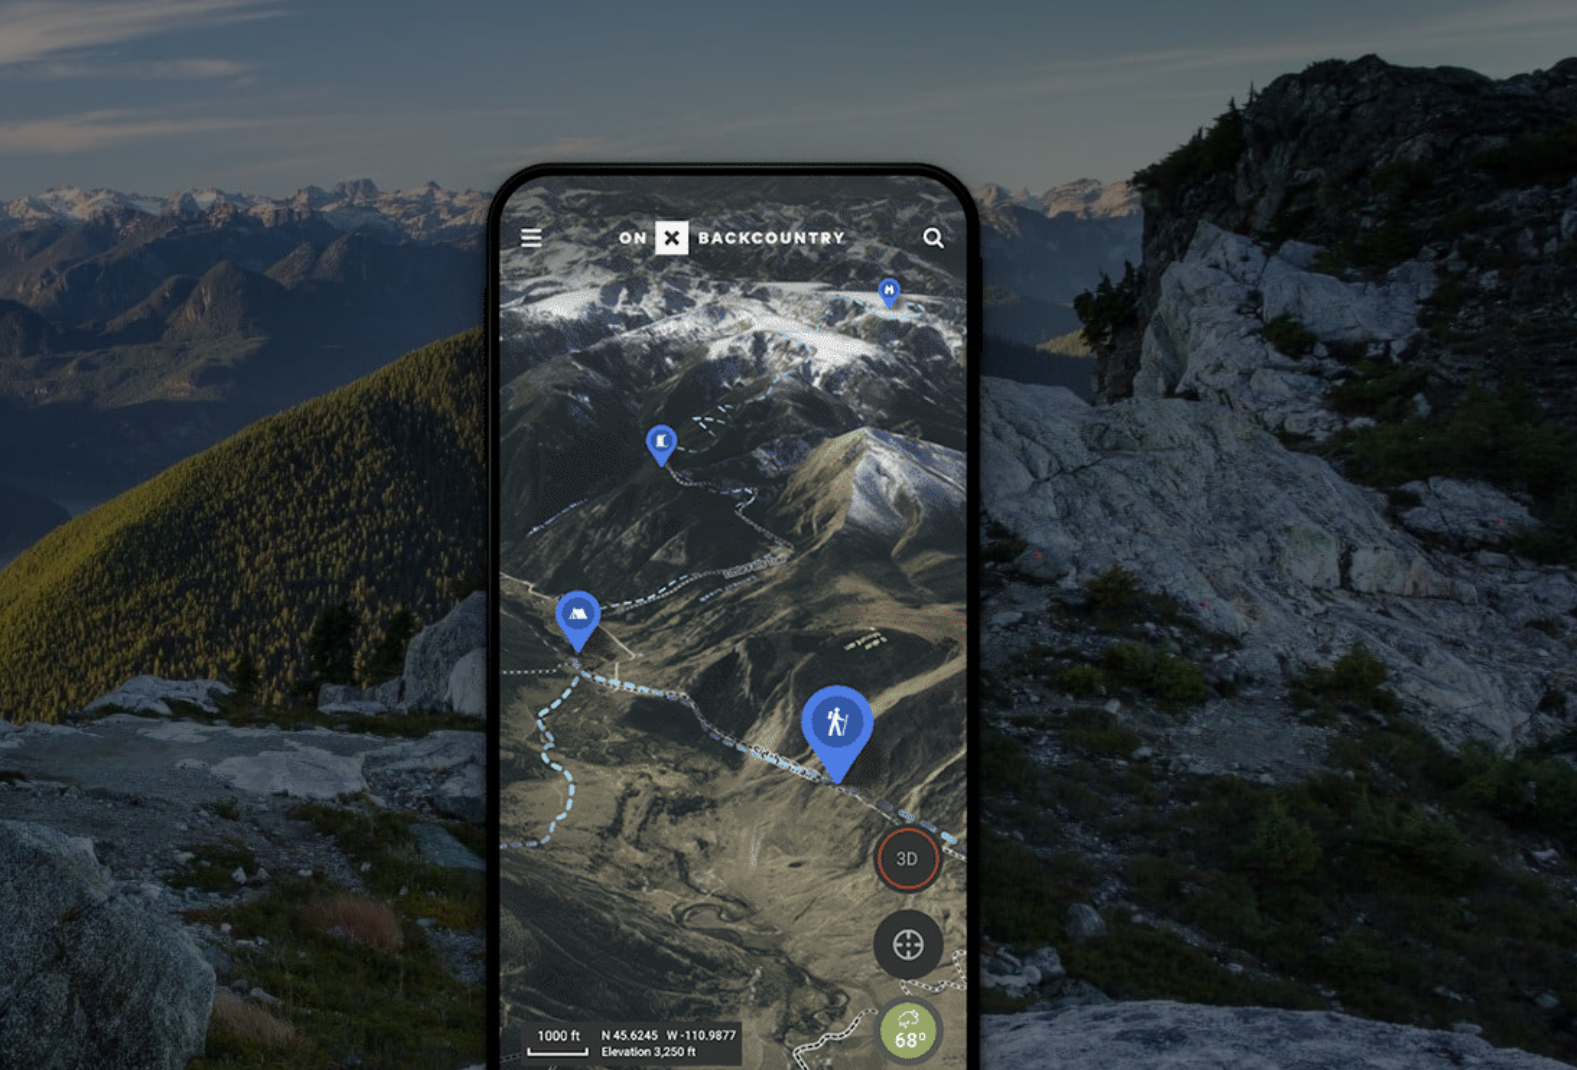 onx backcountry app